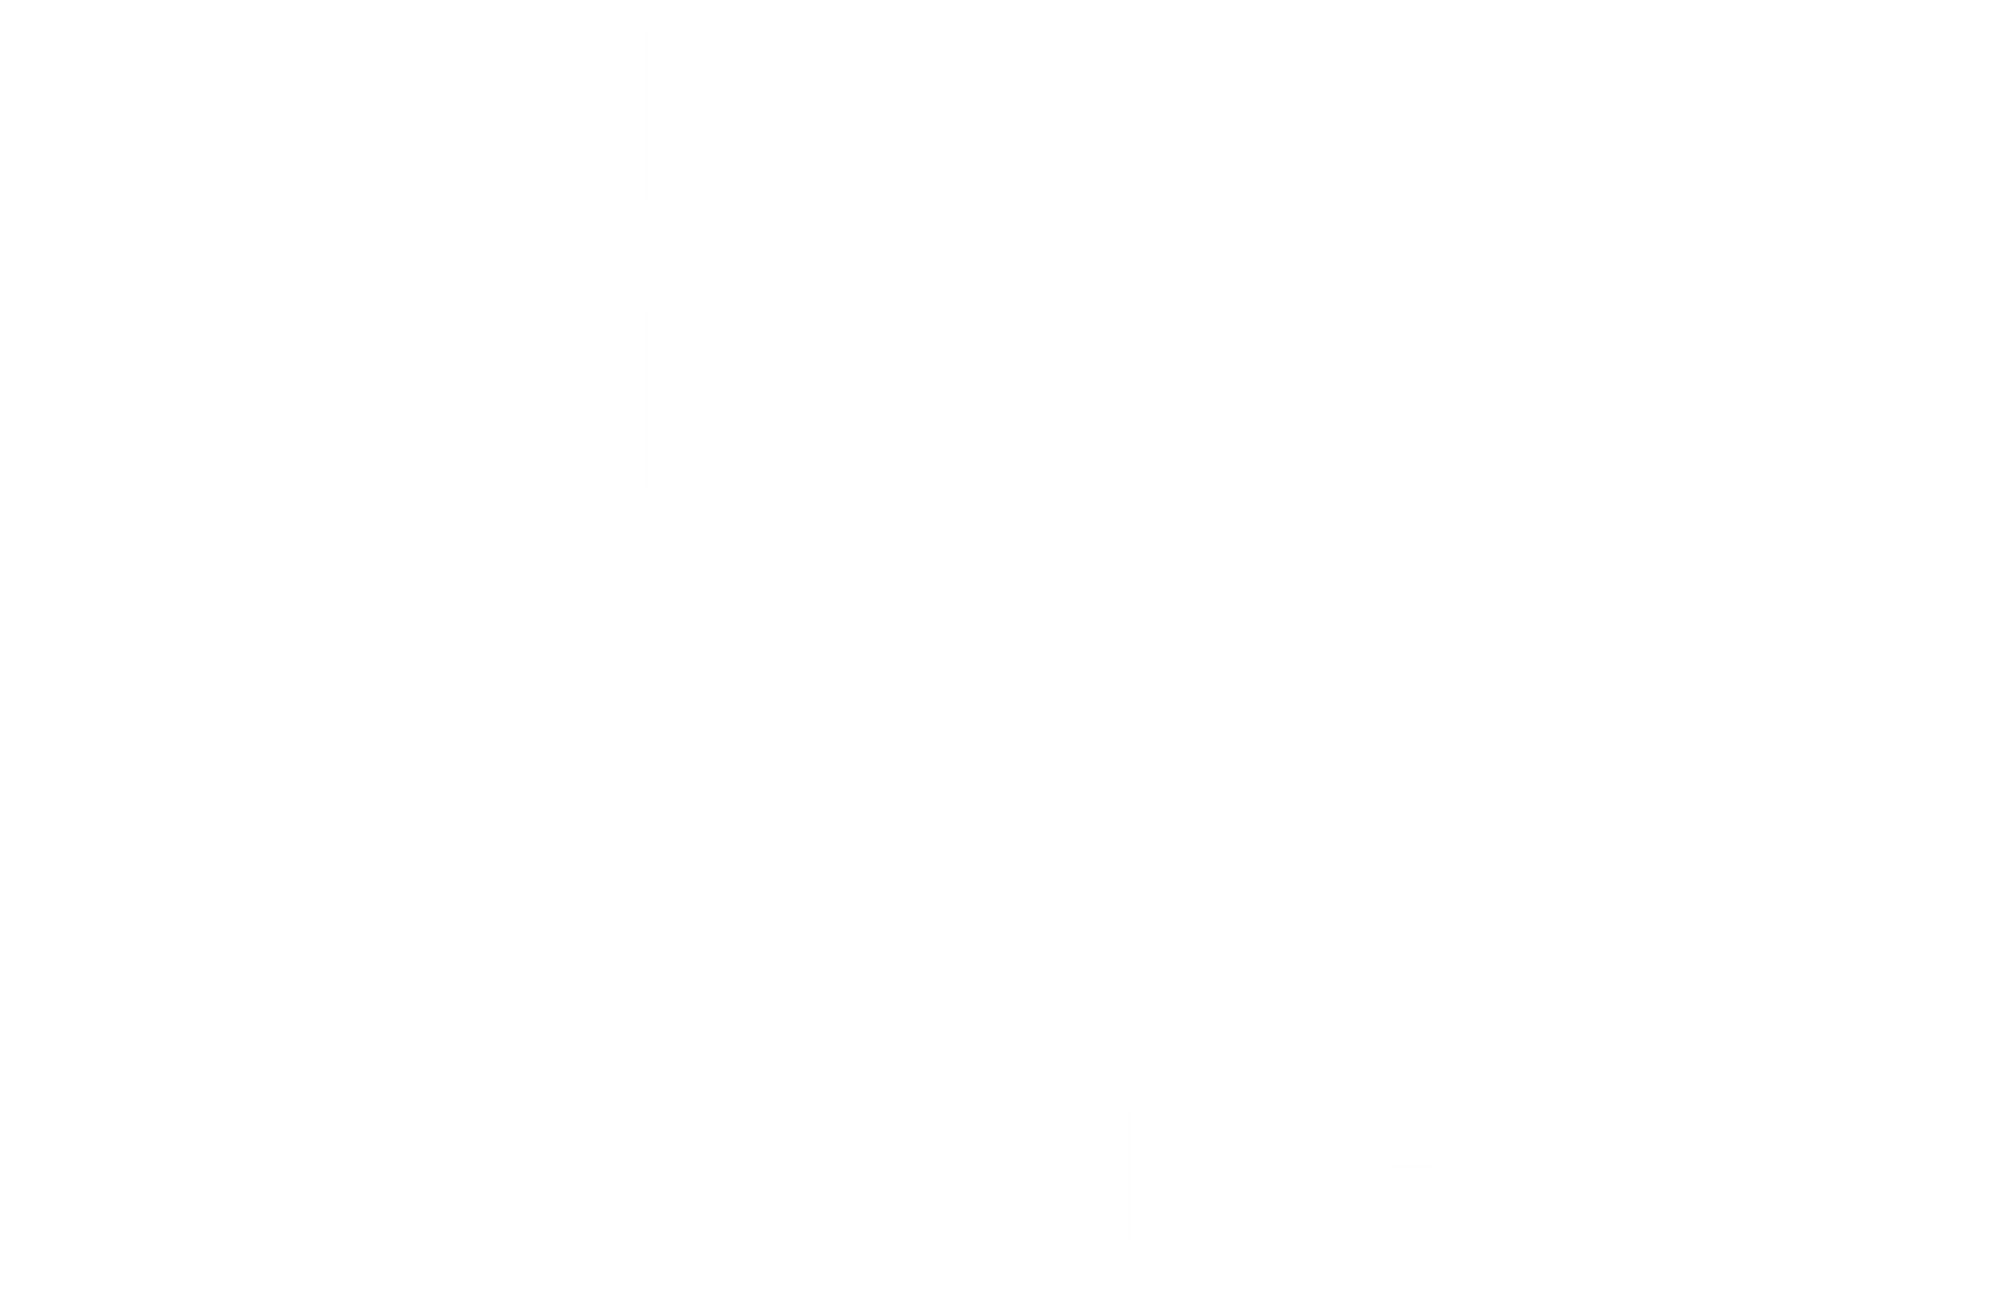 Hilo gummies mobile logo